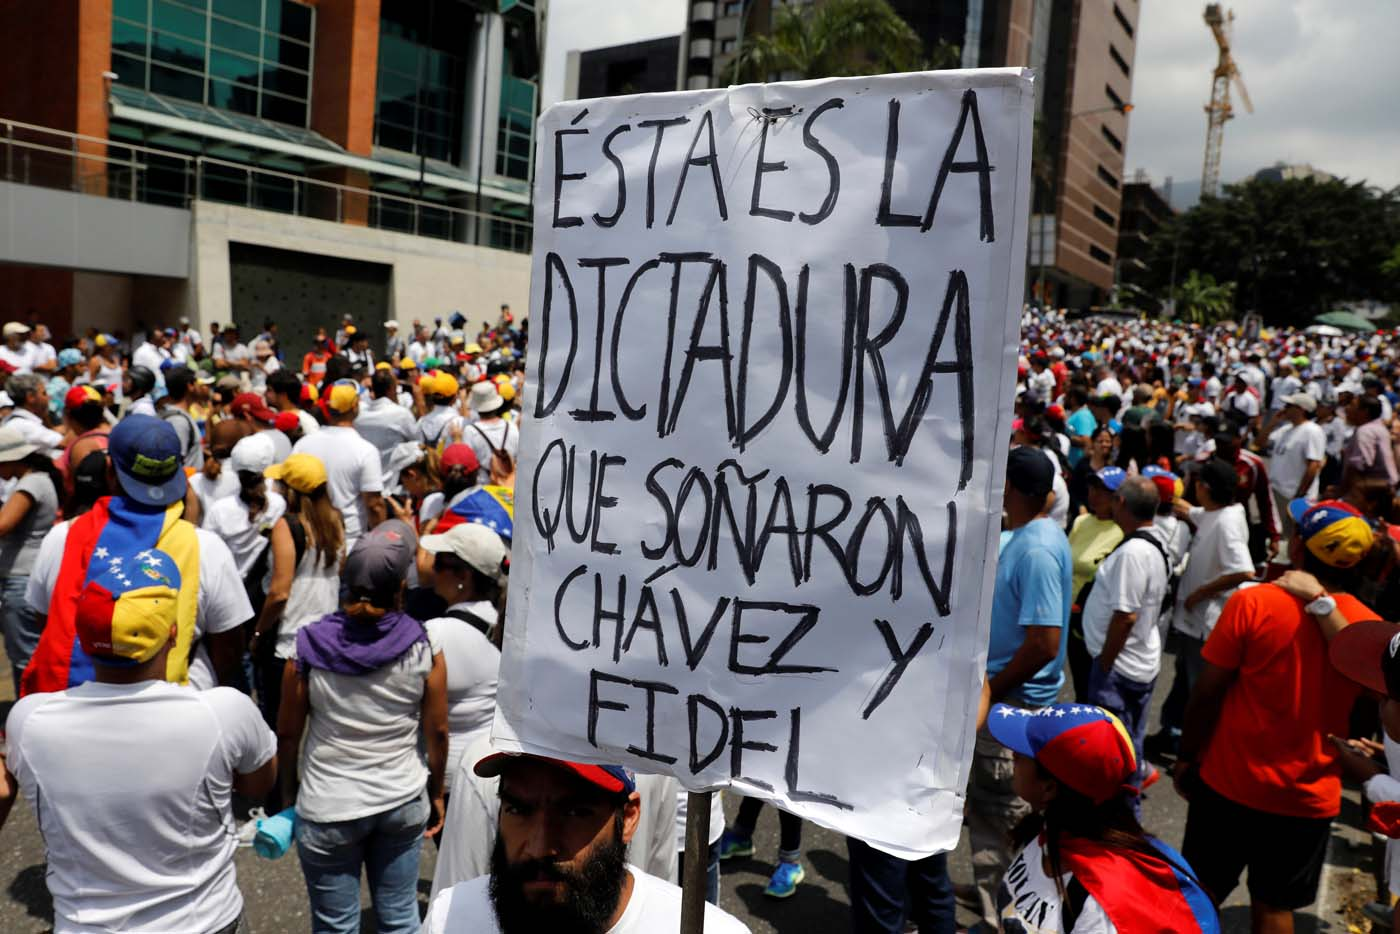 """A demonstrator holds a placard as he takes part in a rally to honour victims of violence during a protest against Venezuela's President Nicolas Maduro's government in Caracas, Venezuela, April 22, 2017. The placard reads """"This is the dictatorship who dreamed, Chavez and Fidel"""". REUTERS/Carlos Garcia Rawlins"""